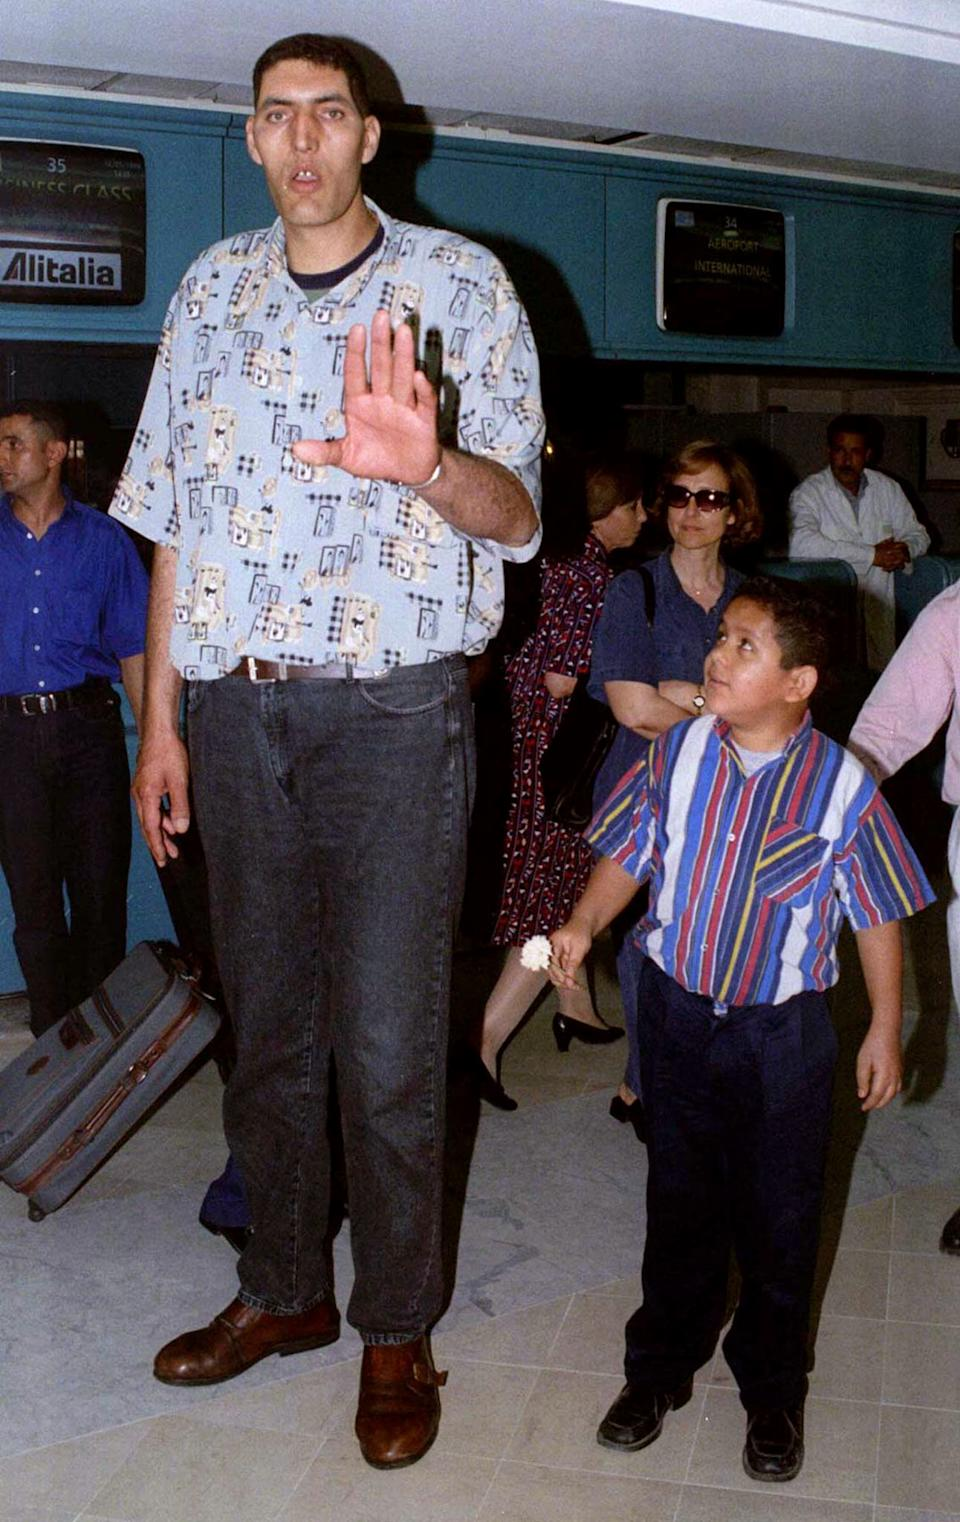 The World's tallest man, Tunisian Radhouan Charbib, gestures before catching a flight from Tunis' Carthage airport for London May 12 where he is due to attend a ceremony held by the Guinness Book of Records celebrating him officially as the Tallest Man in the World. Charbib, 29, stands at 2.35 metres and weighs 160 kgs. He takes over the throne in the Guinness Book from Pakistani Alan Channa 2.32 metres.